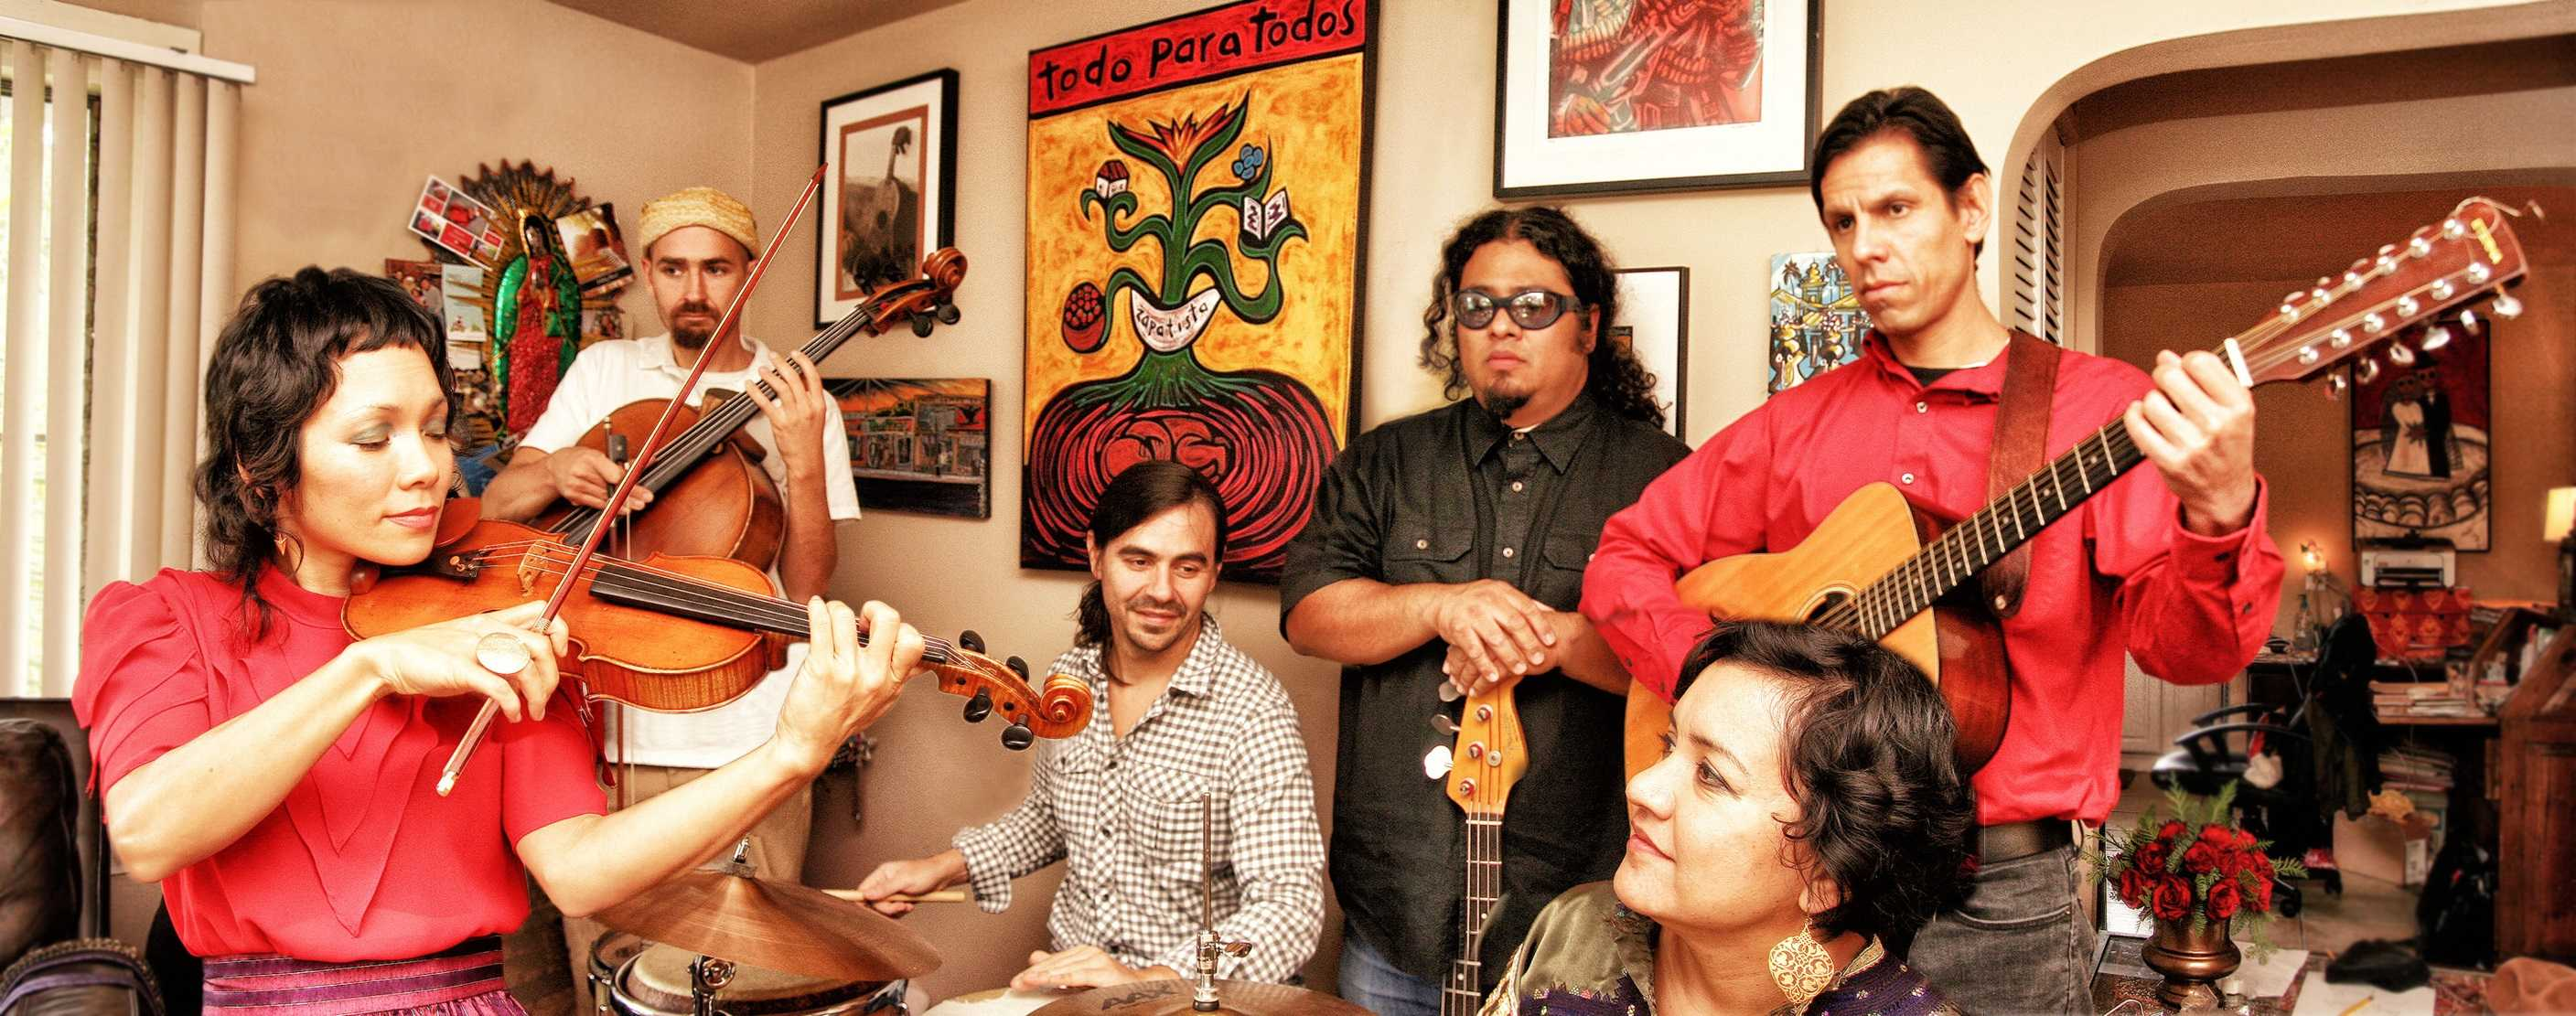 Band members of Quetzal. From left to right: Tylana Enomoto, Quincy McCray, Alberto Lopez, Juan Perez, Quetzal Flores, and Martha Gonzalez. Photo courtesy of The Music Joint Group.